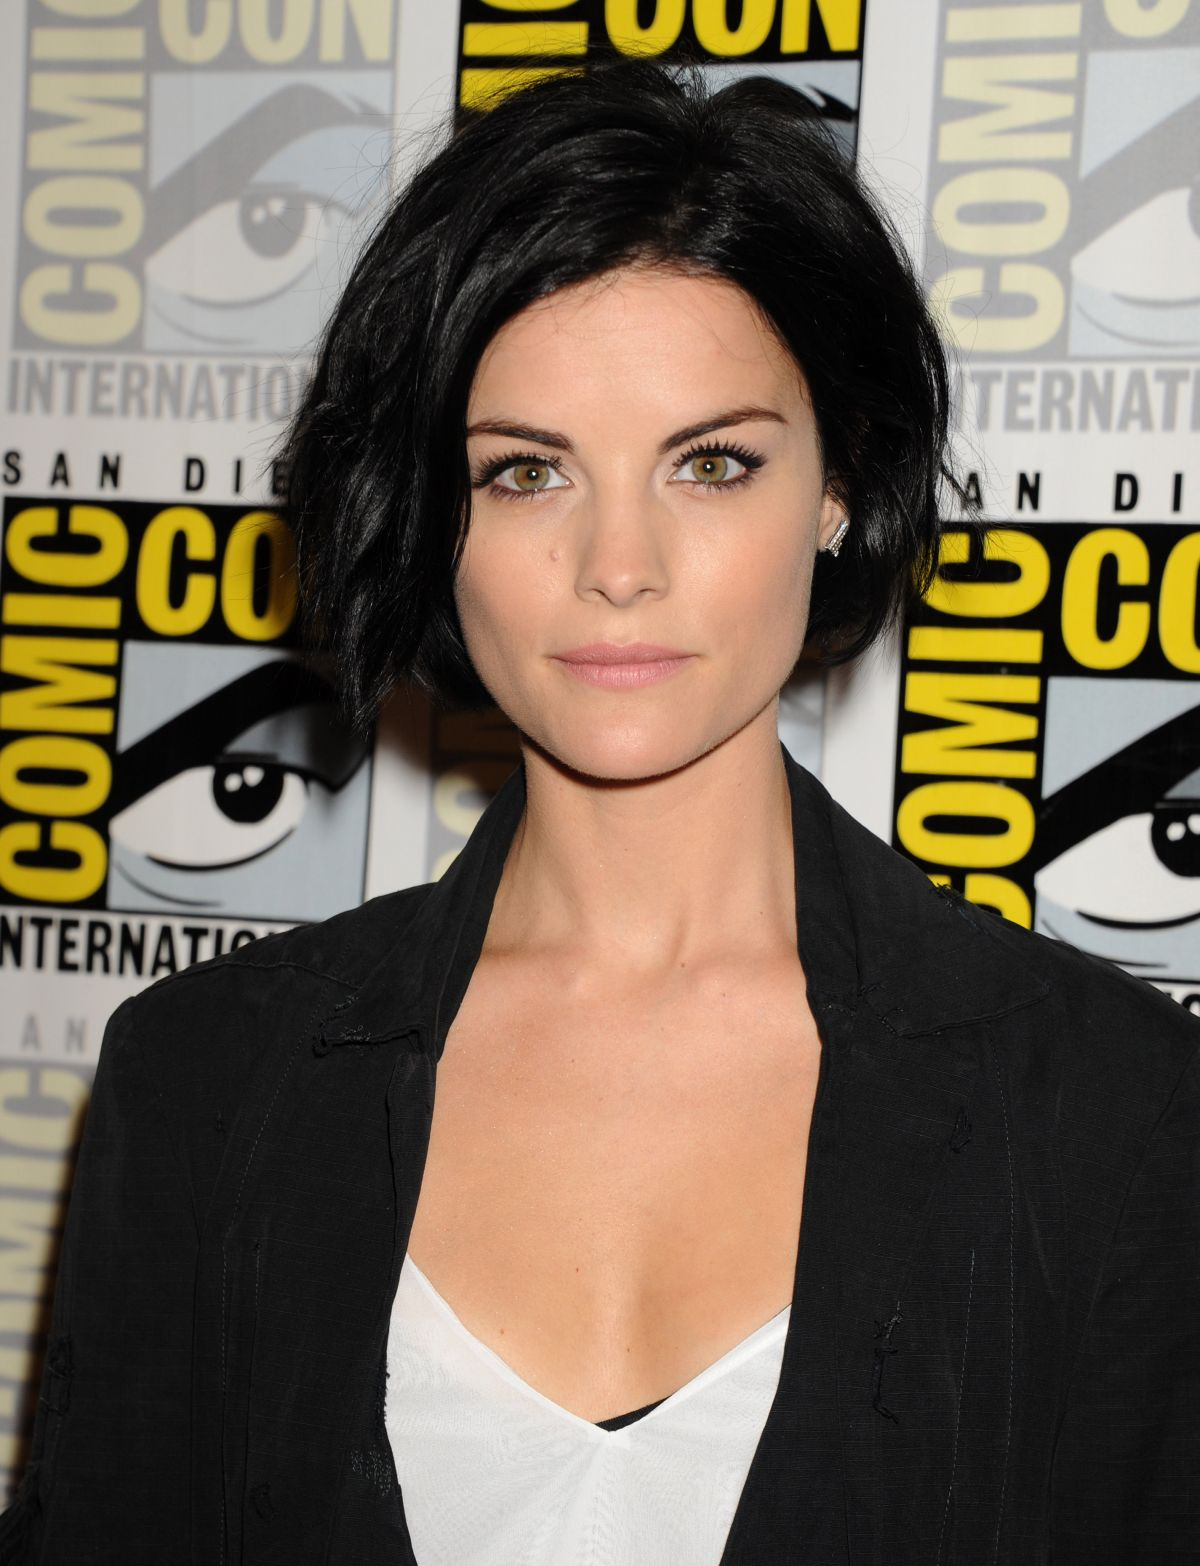 Jaimie Alexander naked (62 fotos), photos Erotica, Instagram, in bikini 2015